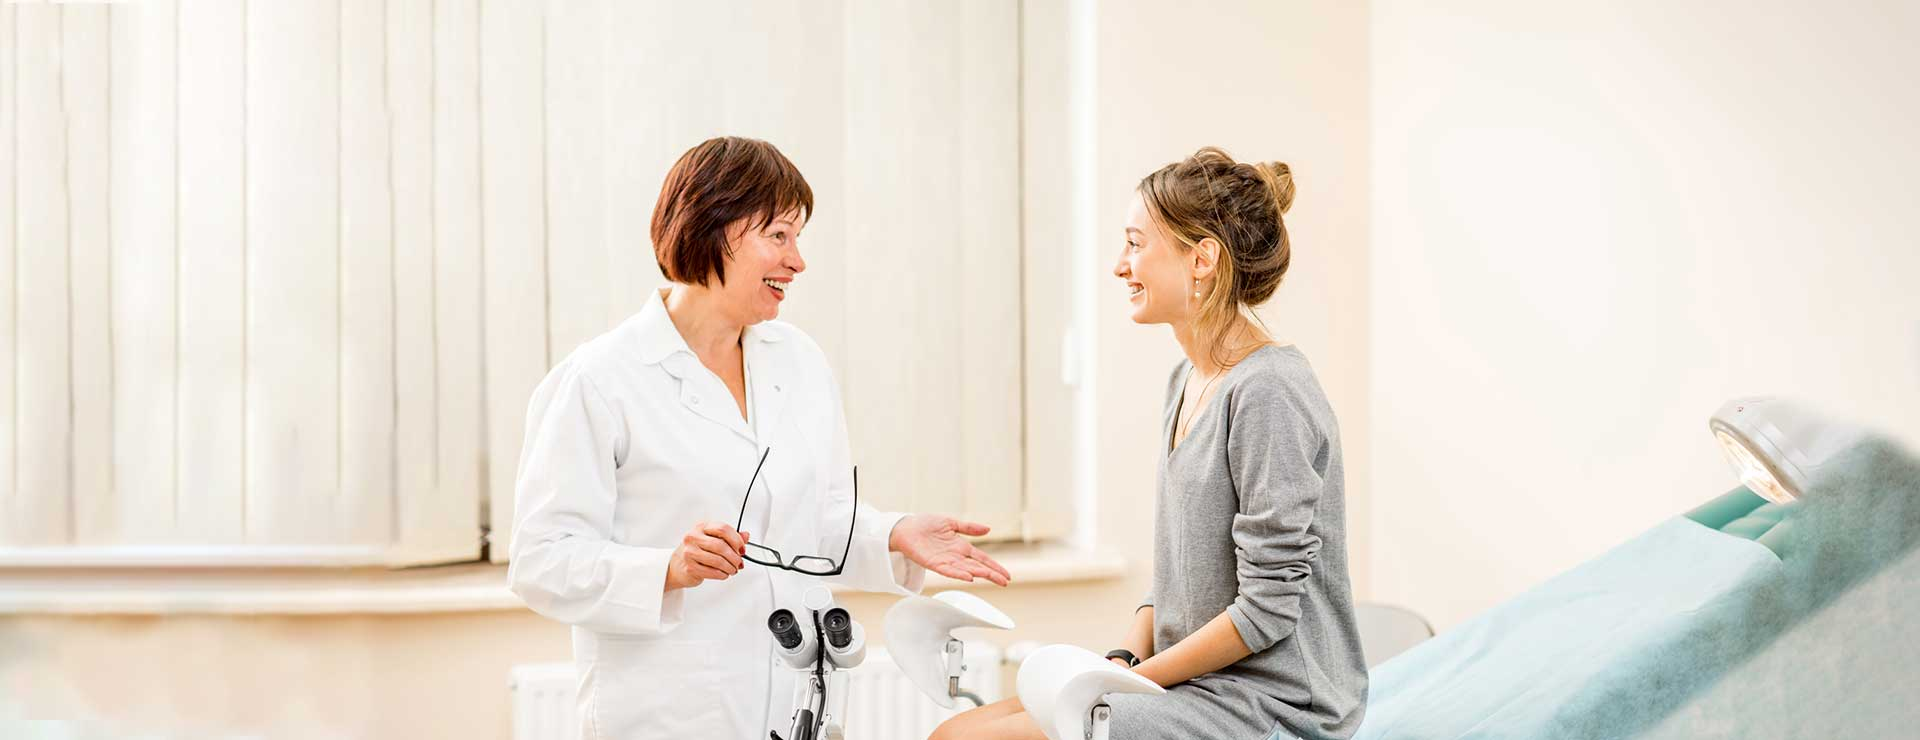 7 Things You Should Always Discuss with Your Gynecologist